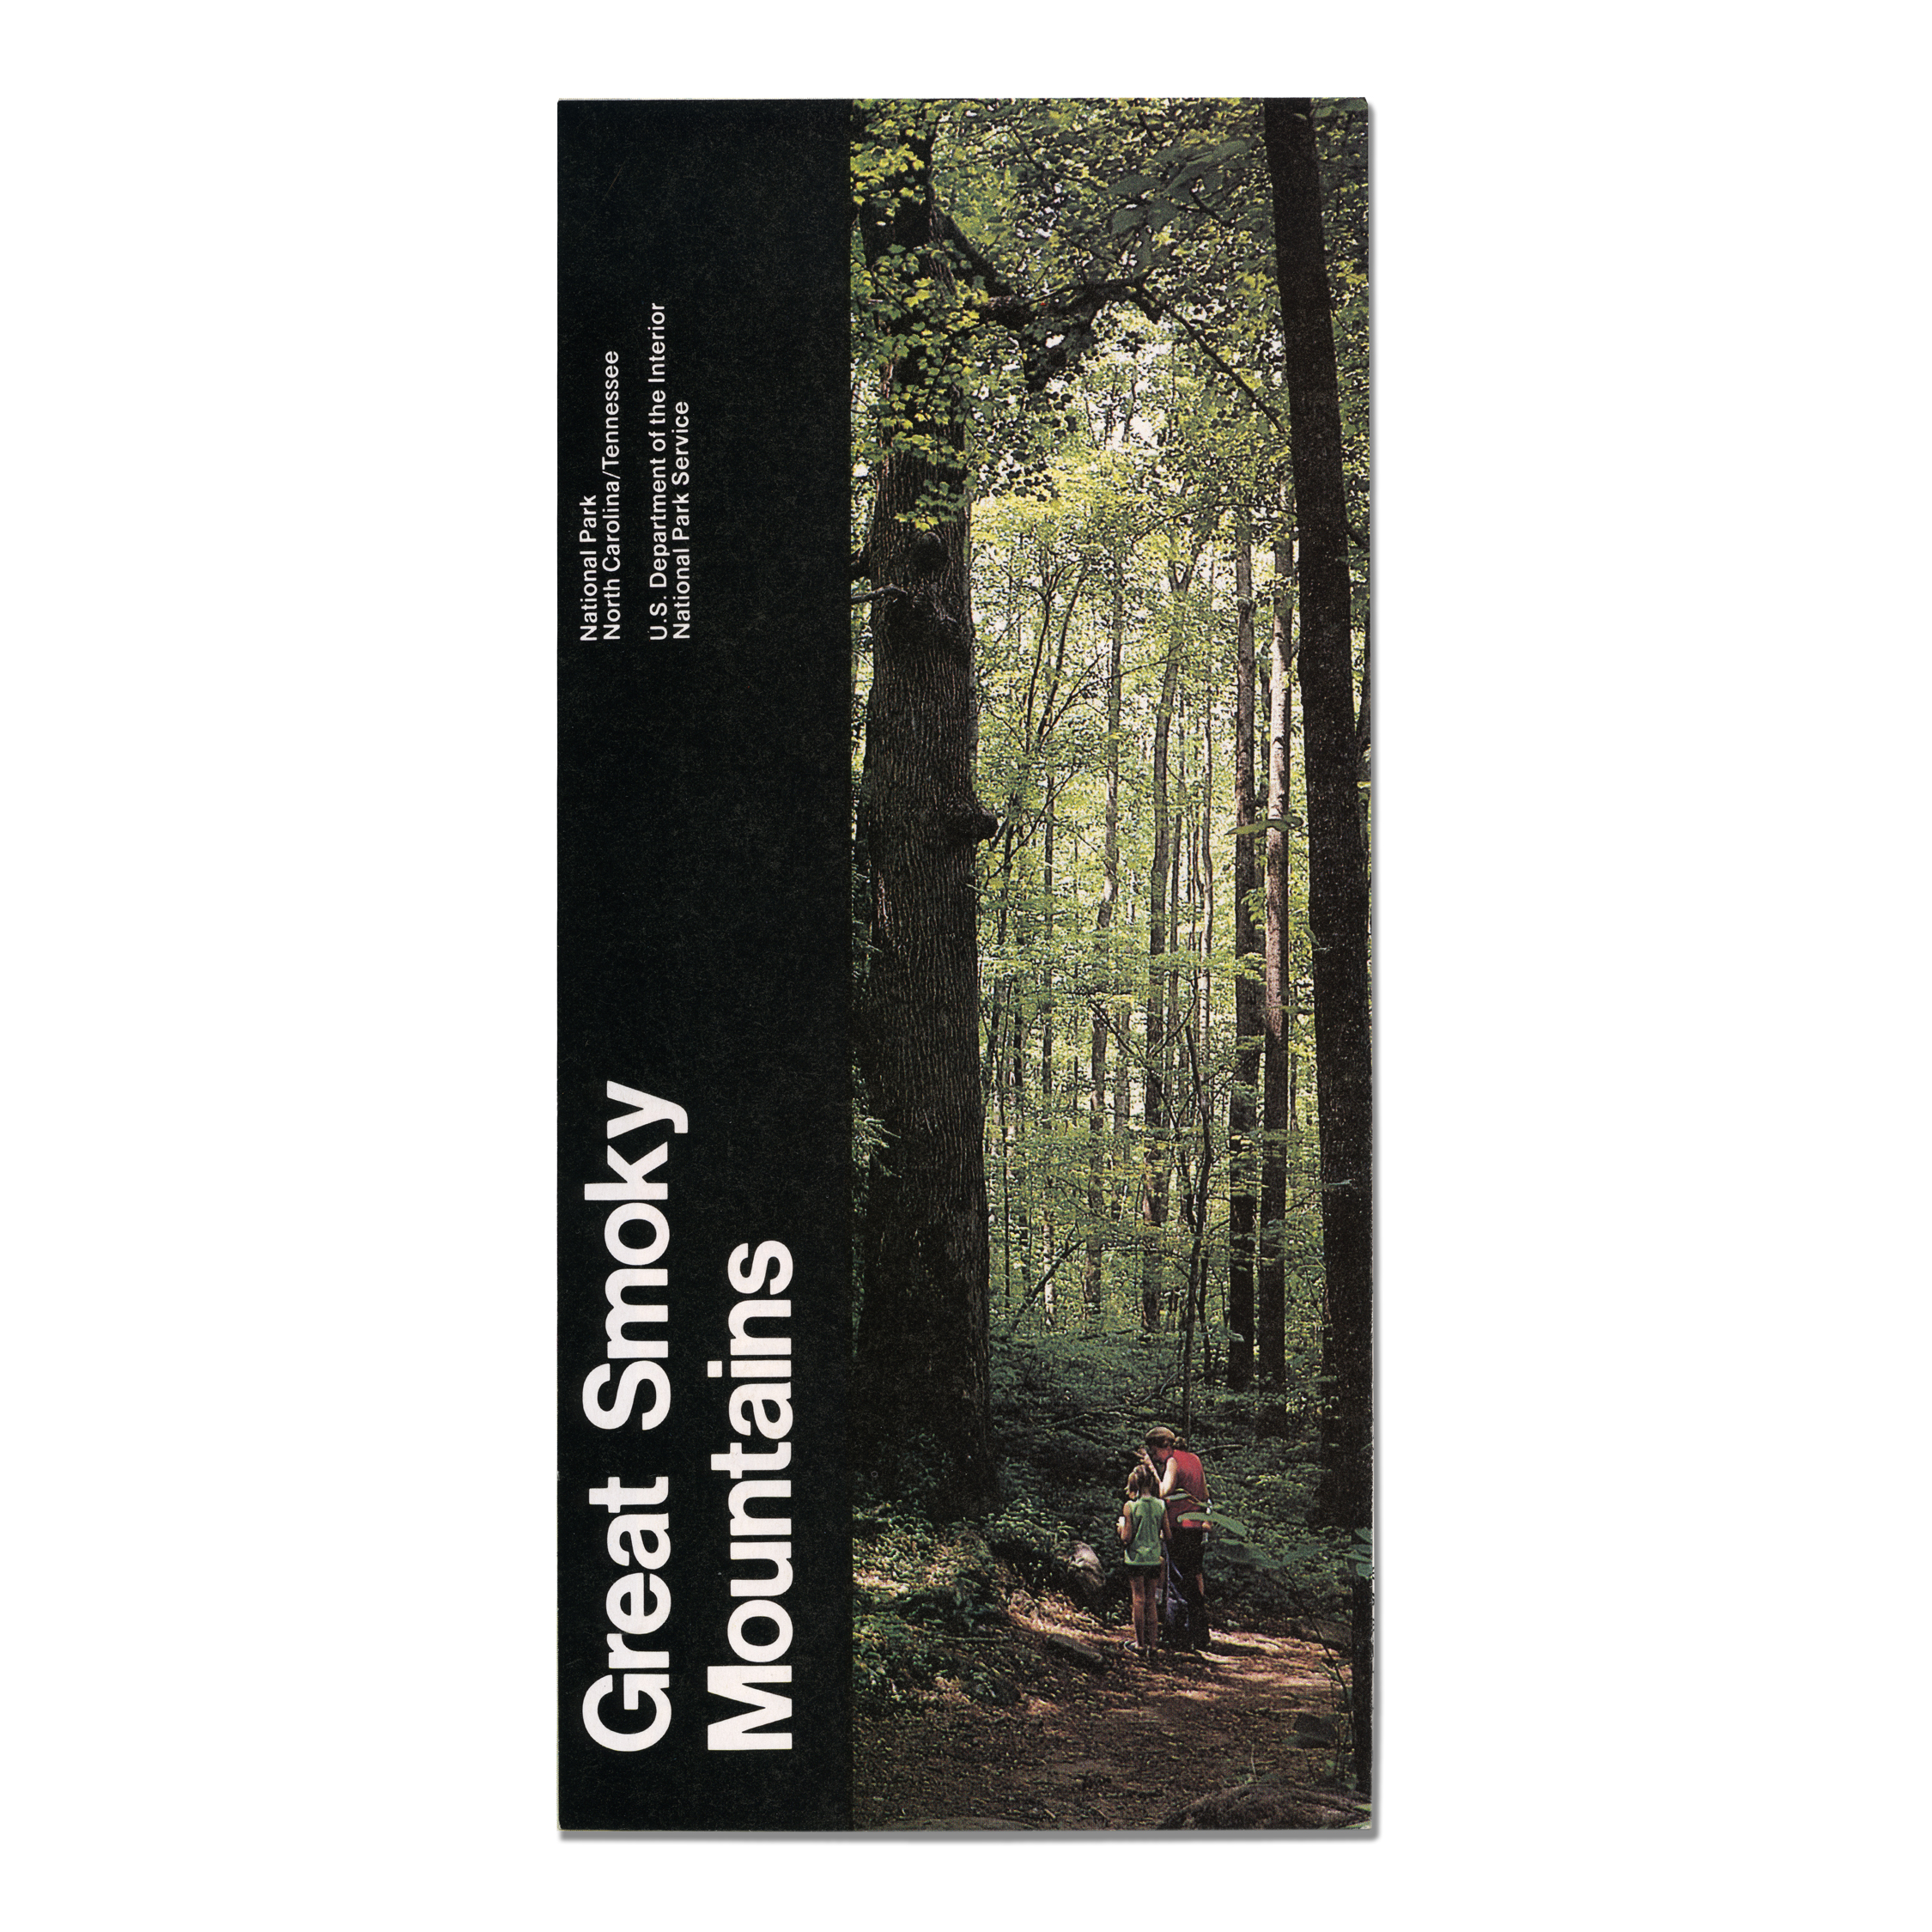 1990_great_smoky_mountains_national_park_brochure.jpg